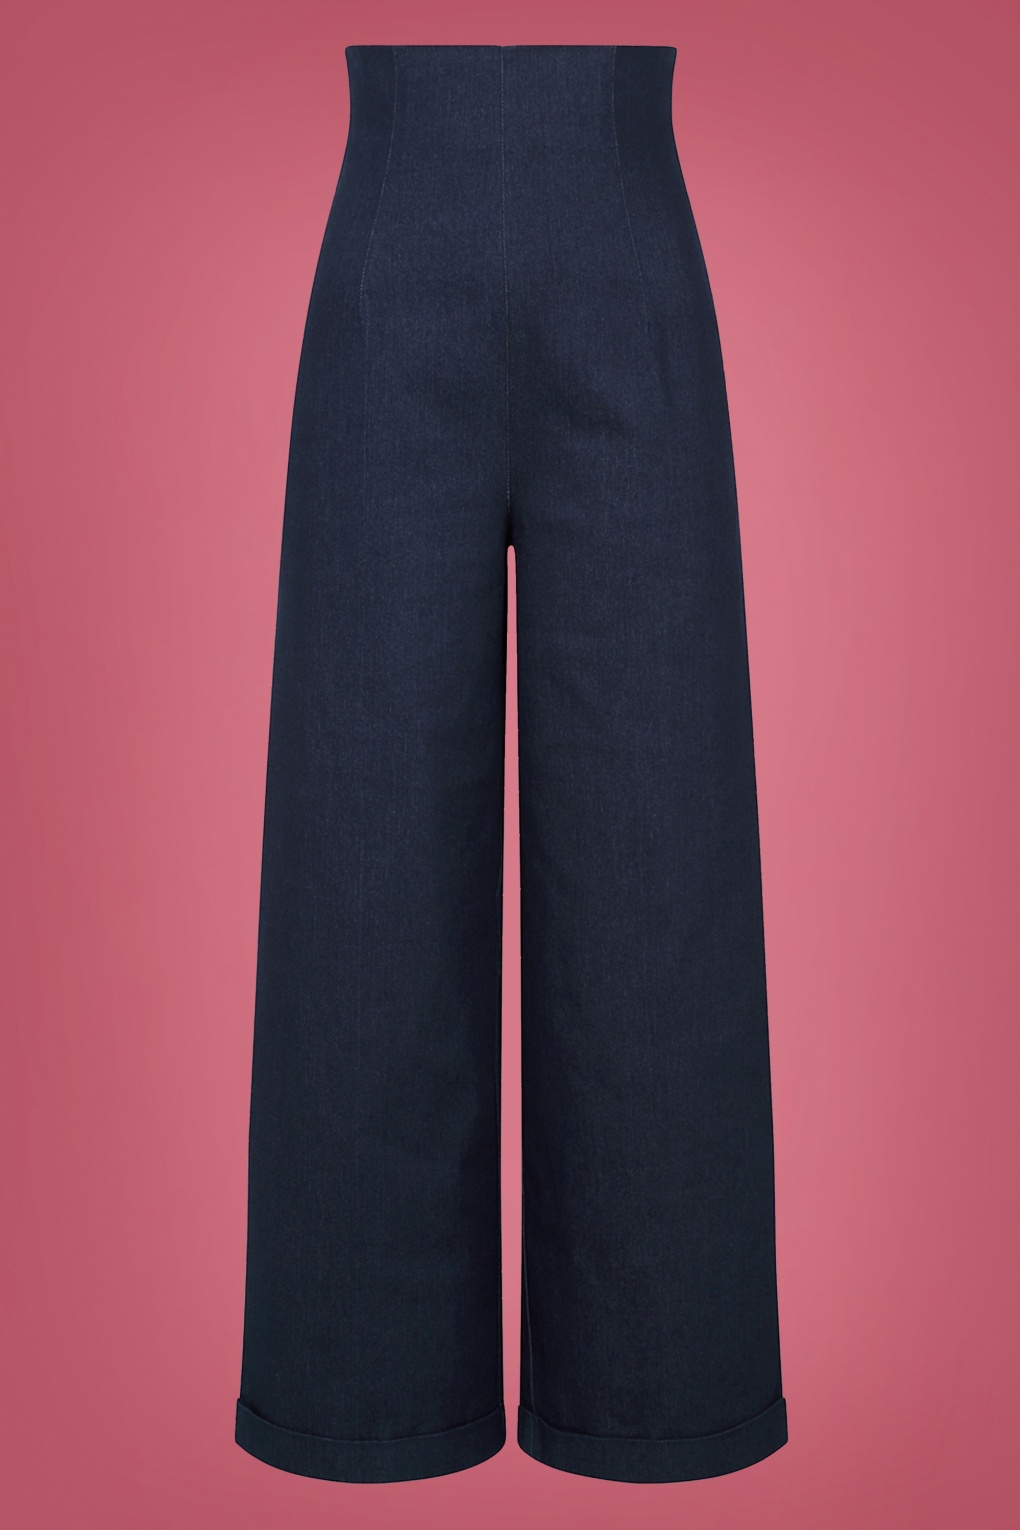 Vintage High Waisted Trousers, Sailor Pants, Jeans 50s Kiki High Waisted Jeans in Navy £48.84 AT vintagedancer.com